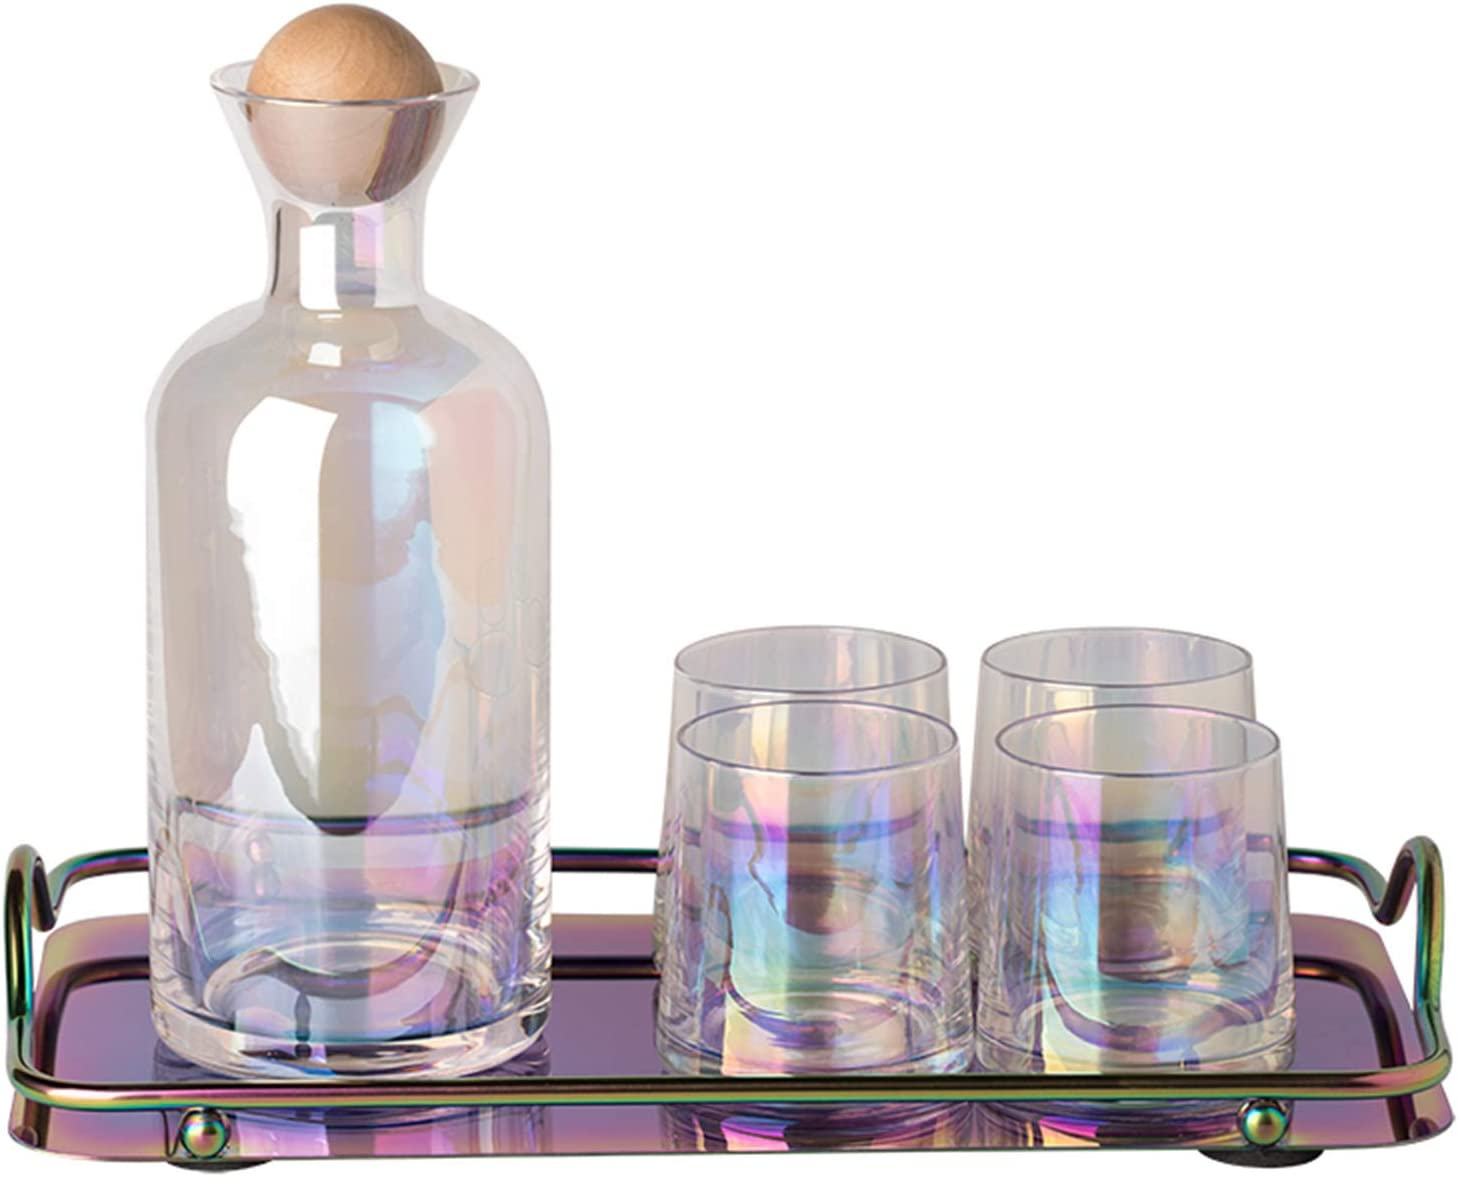 XJAXY 8.45 Ounce Glass Water Tumbler, Set of 4, with A Big Water Bottle and Serving Tray, Reusable Cups, Unbreakable Glasses